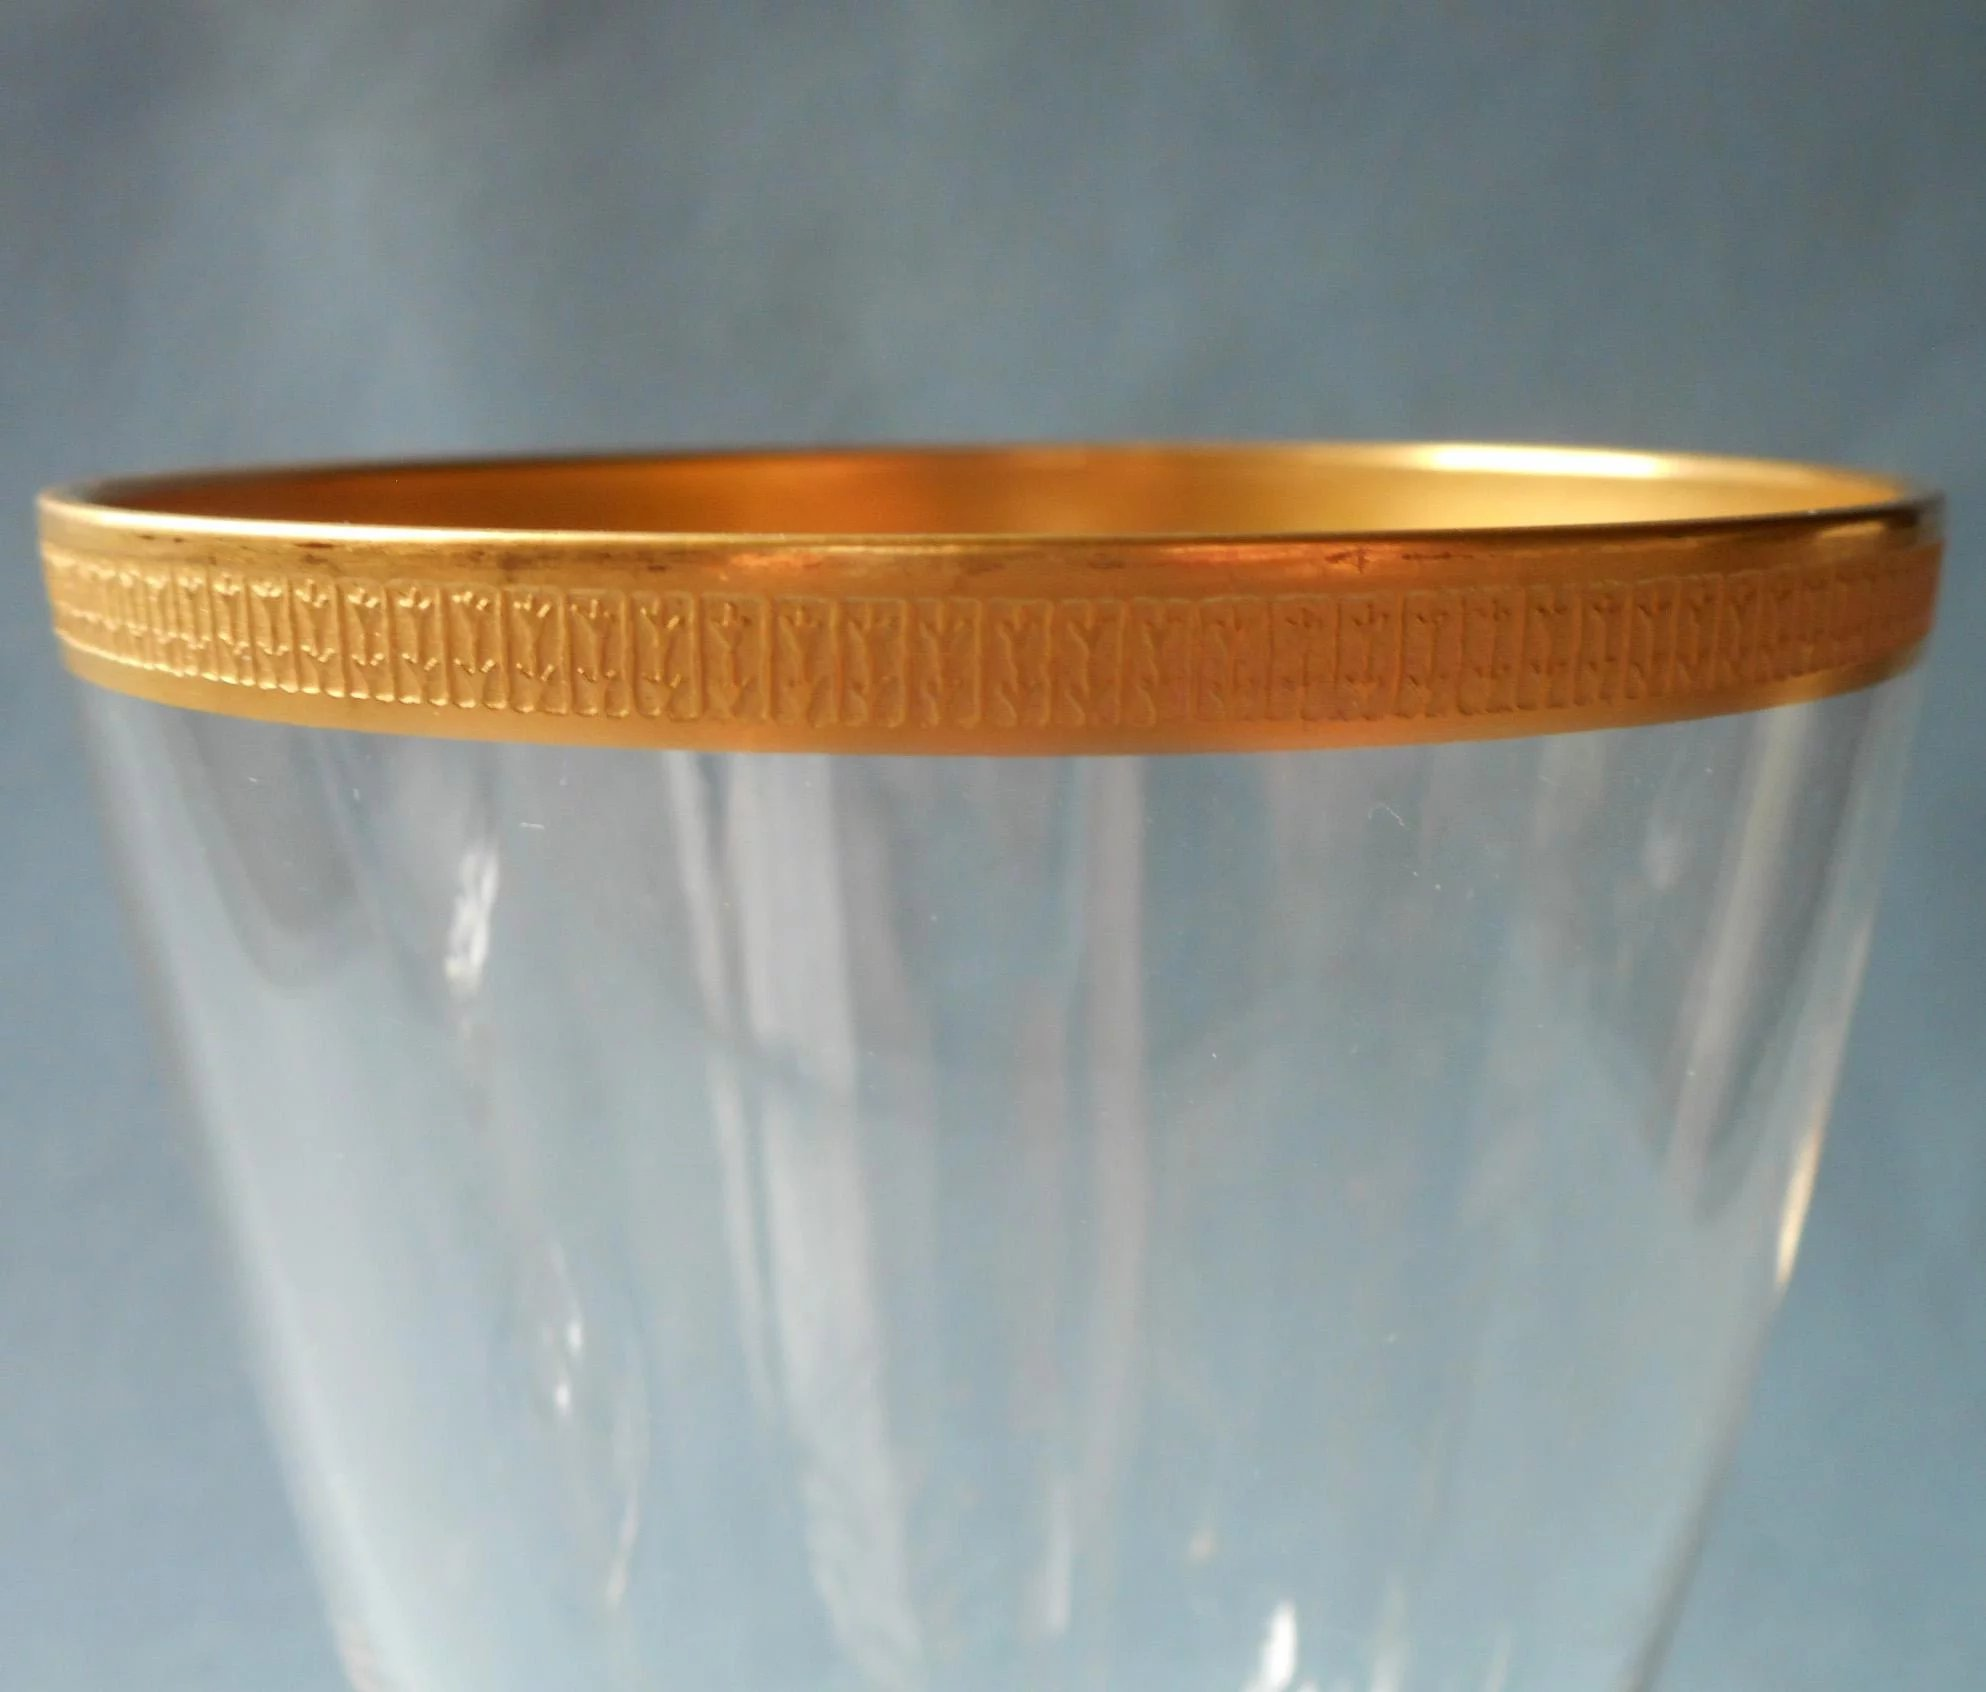 Lenox tuxedo 4 crystal wine glasses gold encrusted rims vintage click to expand reviewsmspy